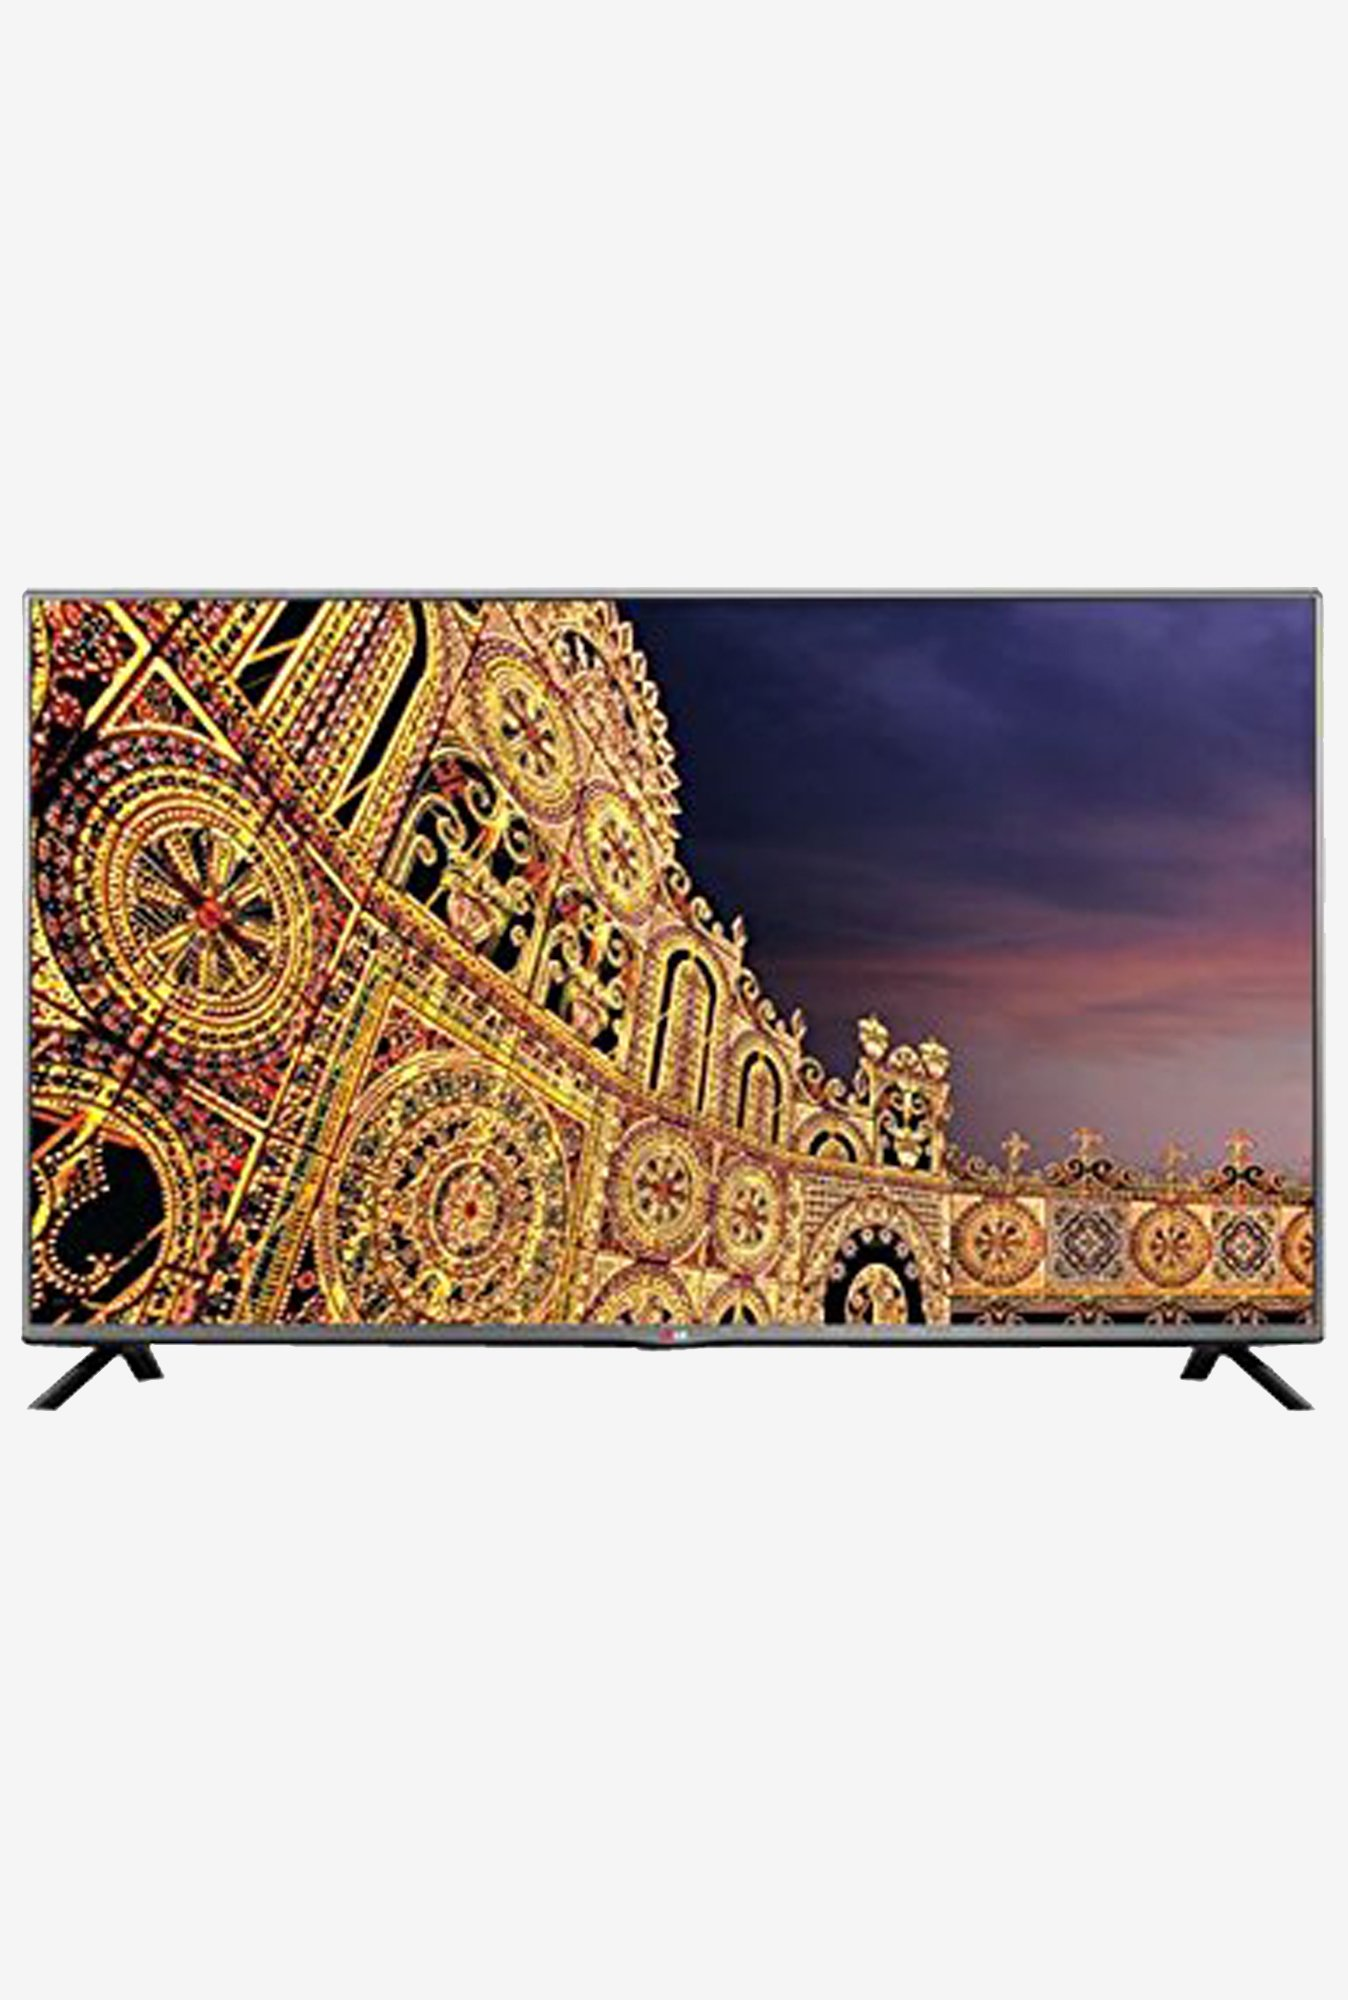 LG 42LB6200 107 cm (42 inches) Full HD LED TV